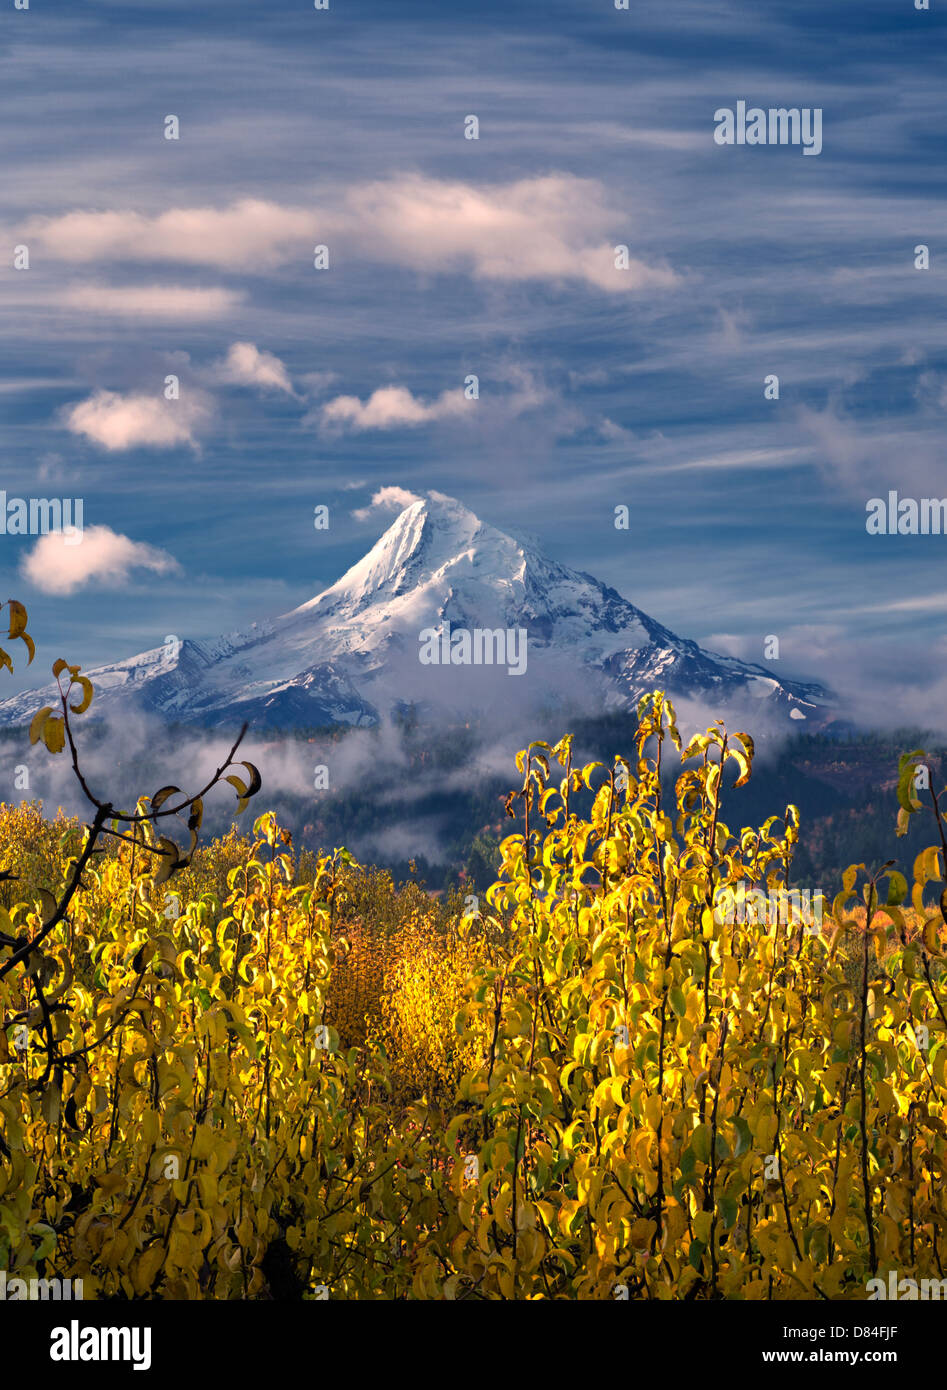 Birnengarten in Herbstfarben und Mt. Hood. Hood River Valley, Oregon Stockbild